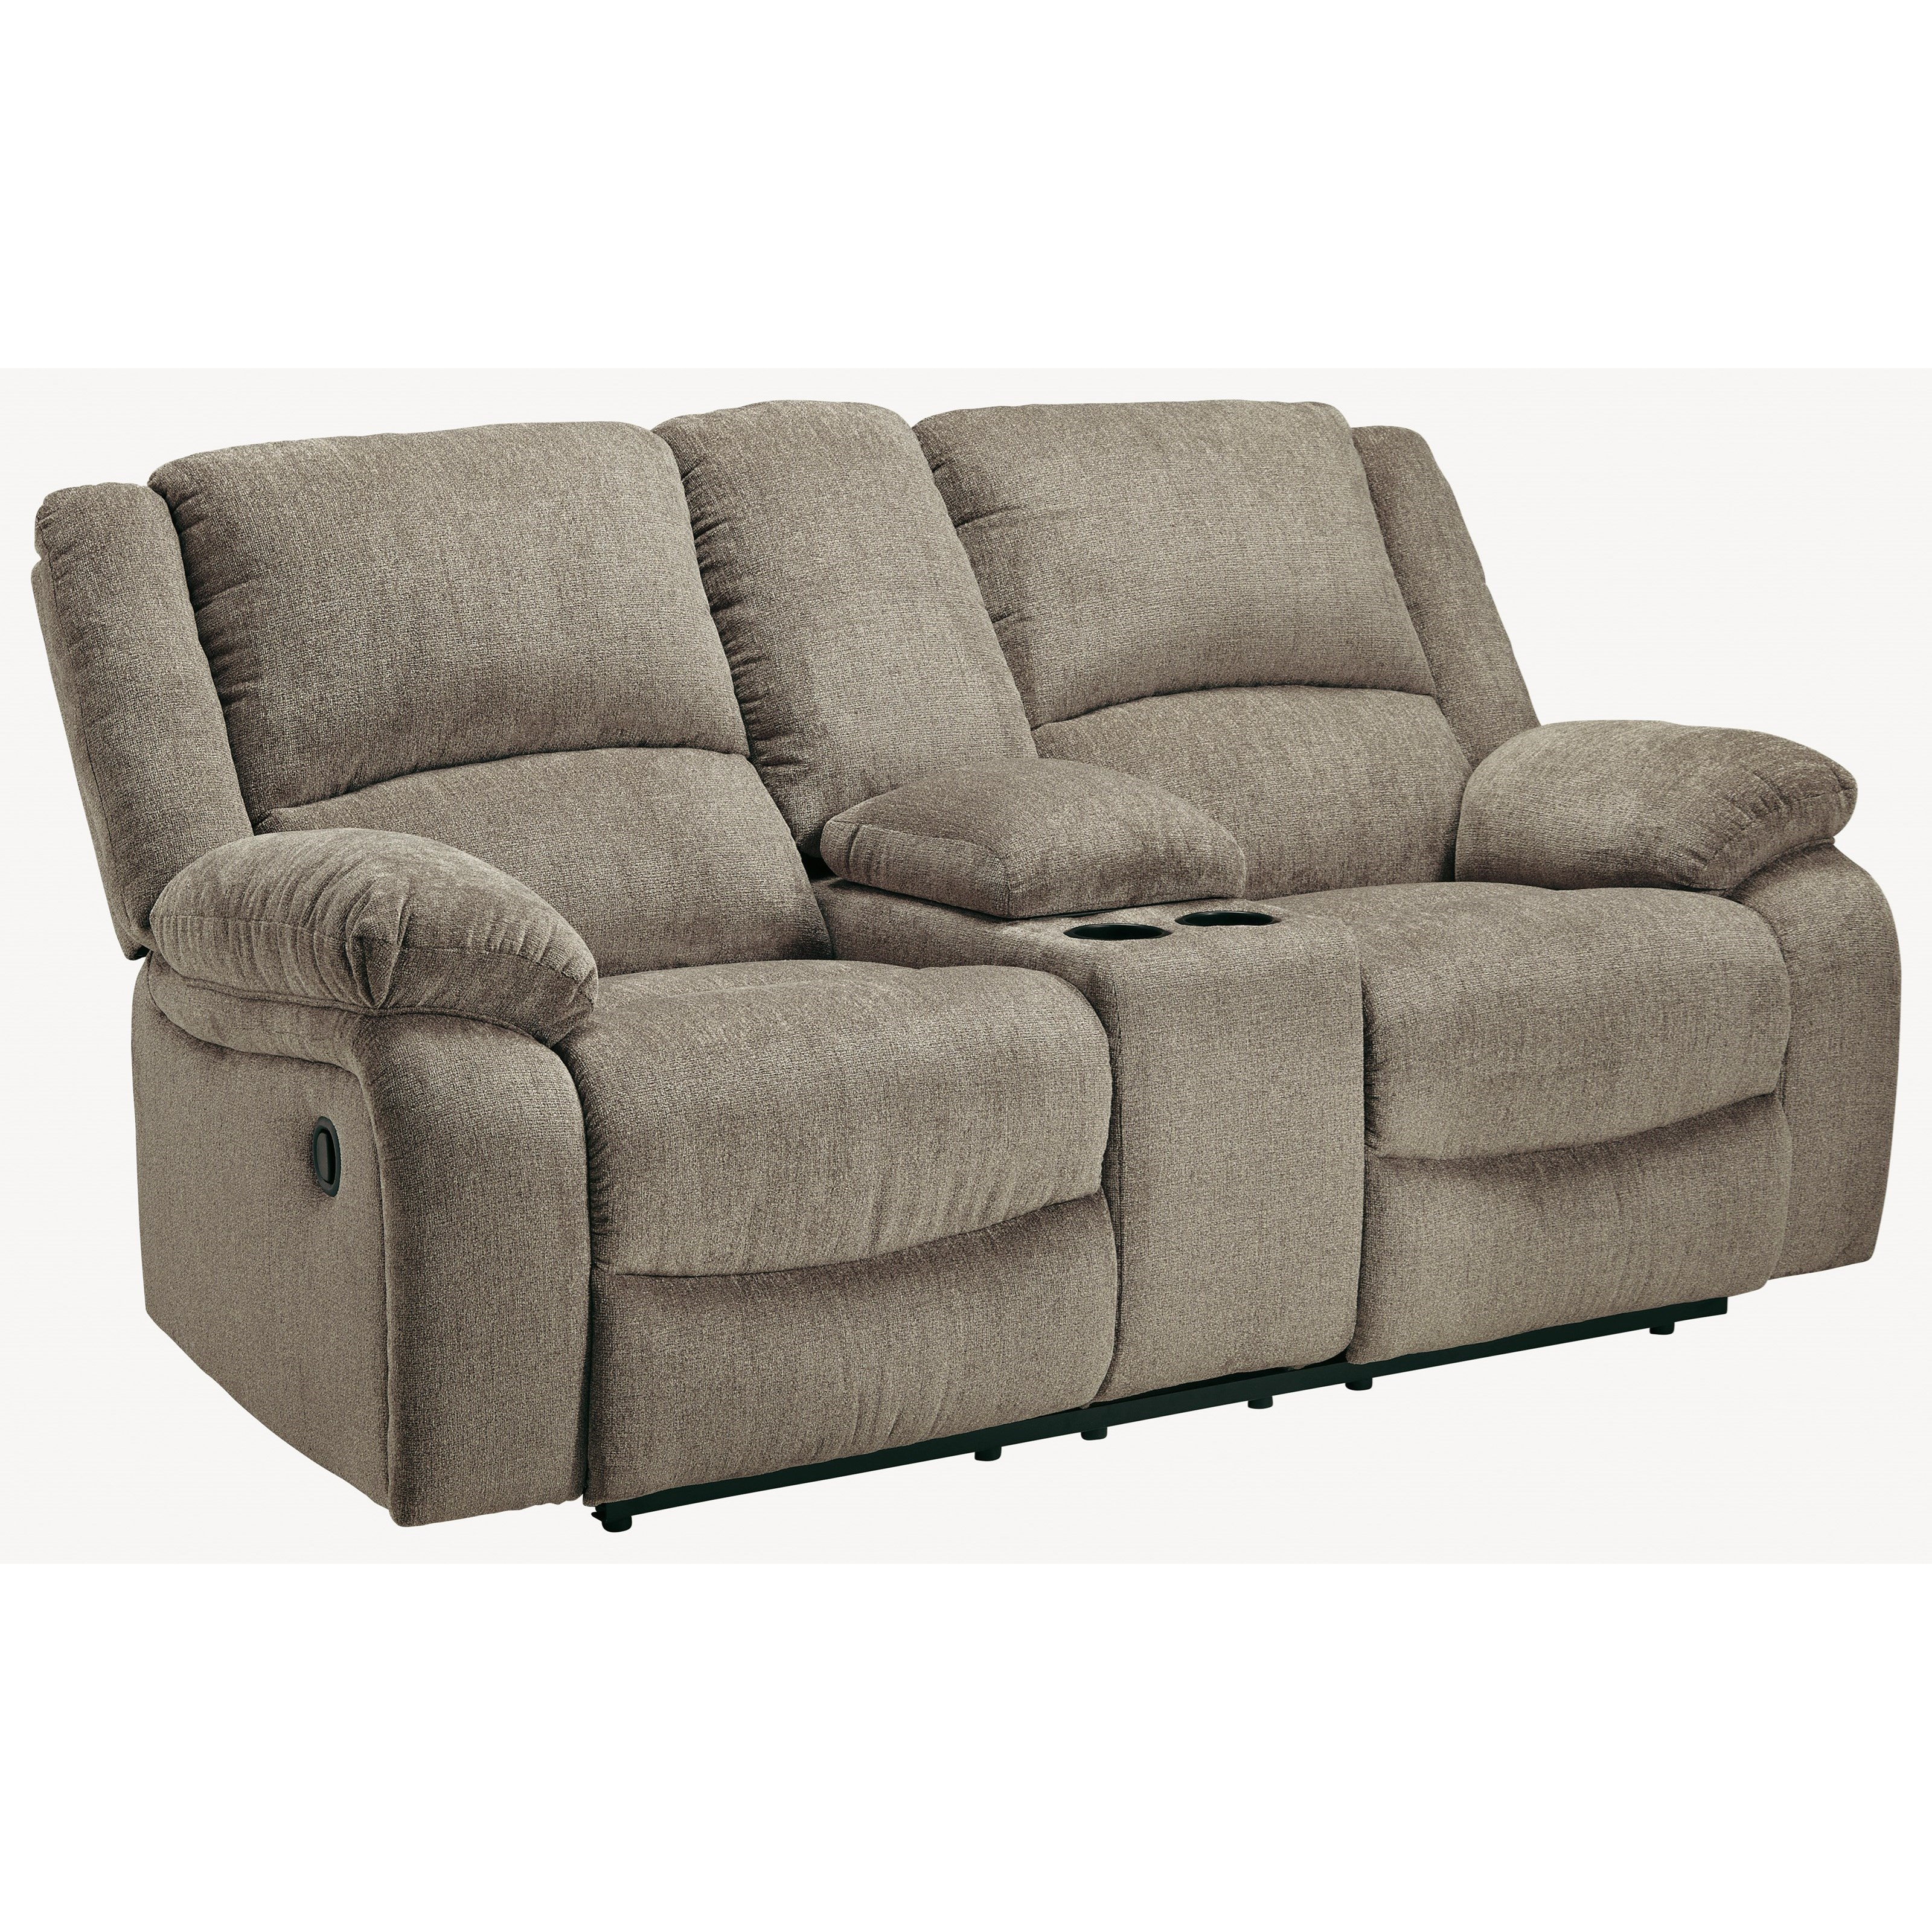 Draycoll Double Reclining Loveseat w/ Console by Ashley (Signature Design) at Johnny Janosik